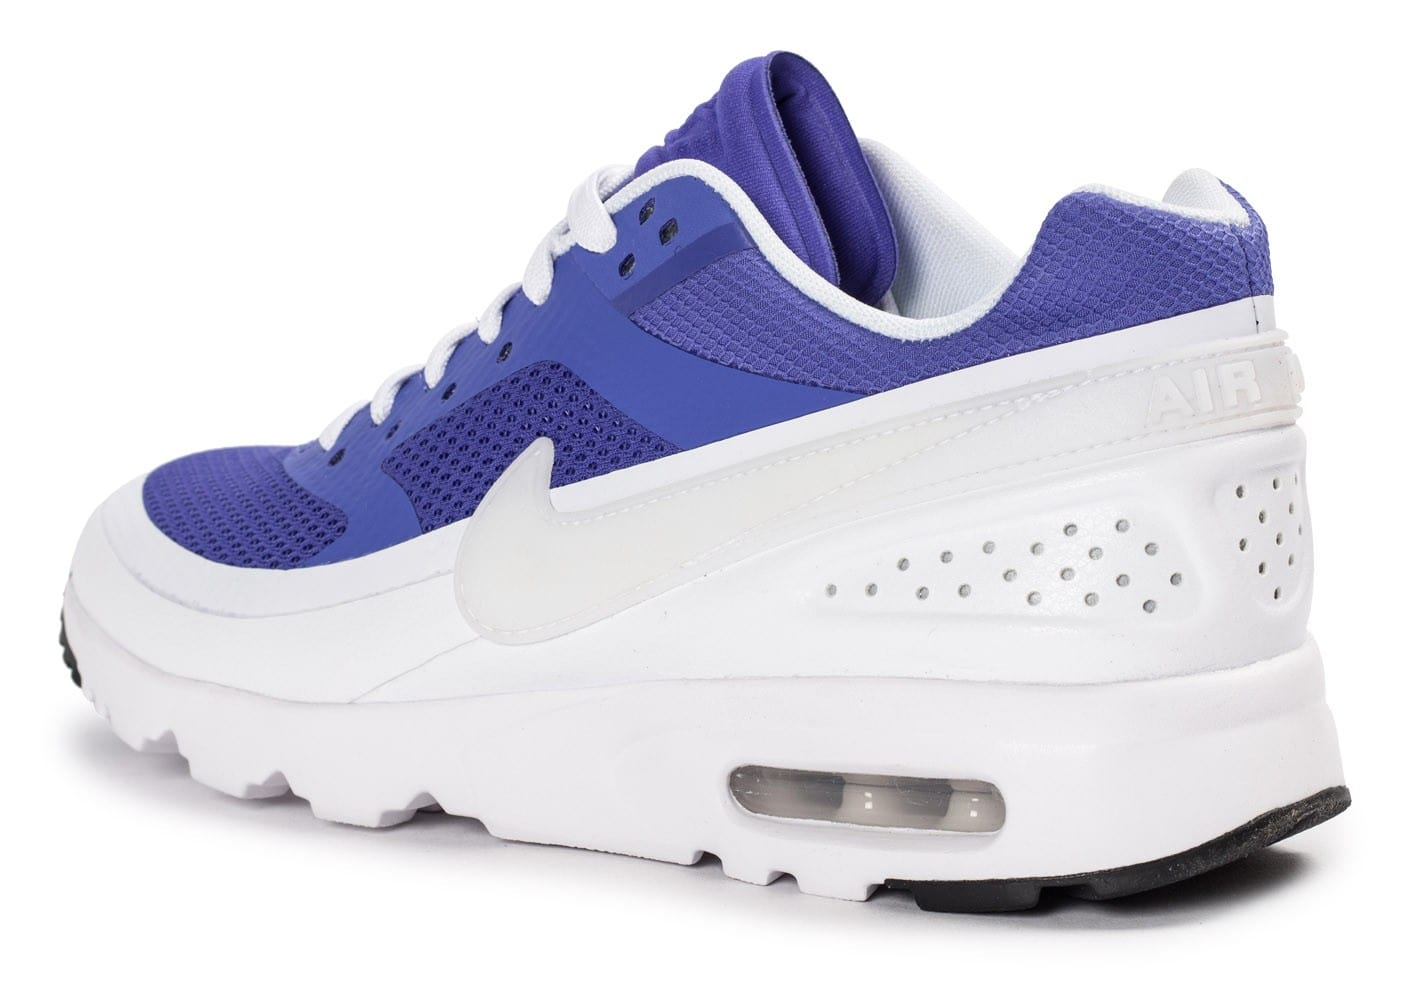 huge selection of fc3a5 05d4f ... Chaussures Nike Air Max BW Ultra Persian Violet vue arrière ...